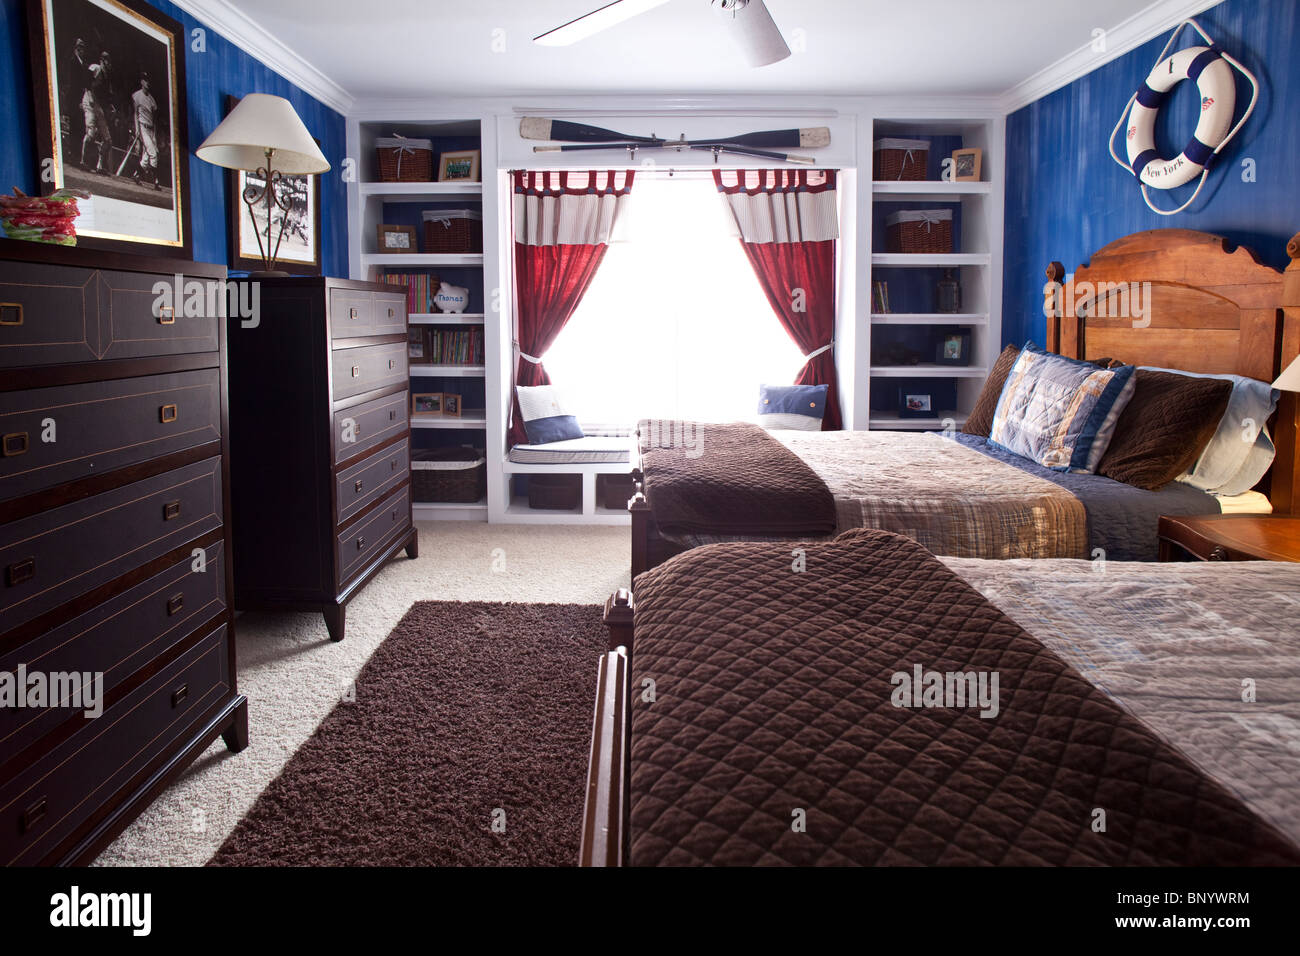 Boys bedroom in marine style american home stock photo